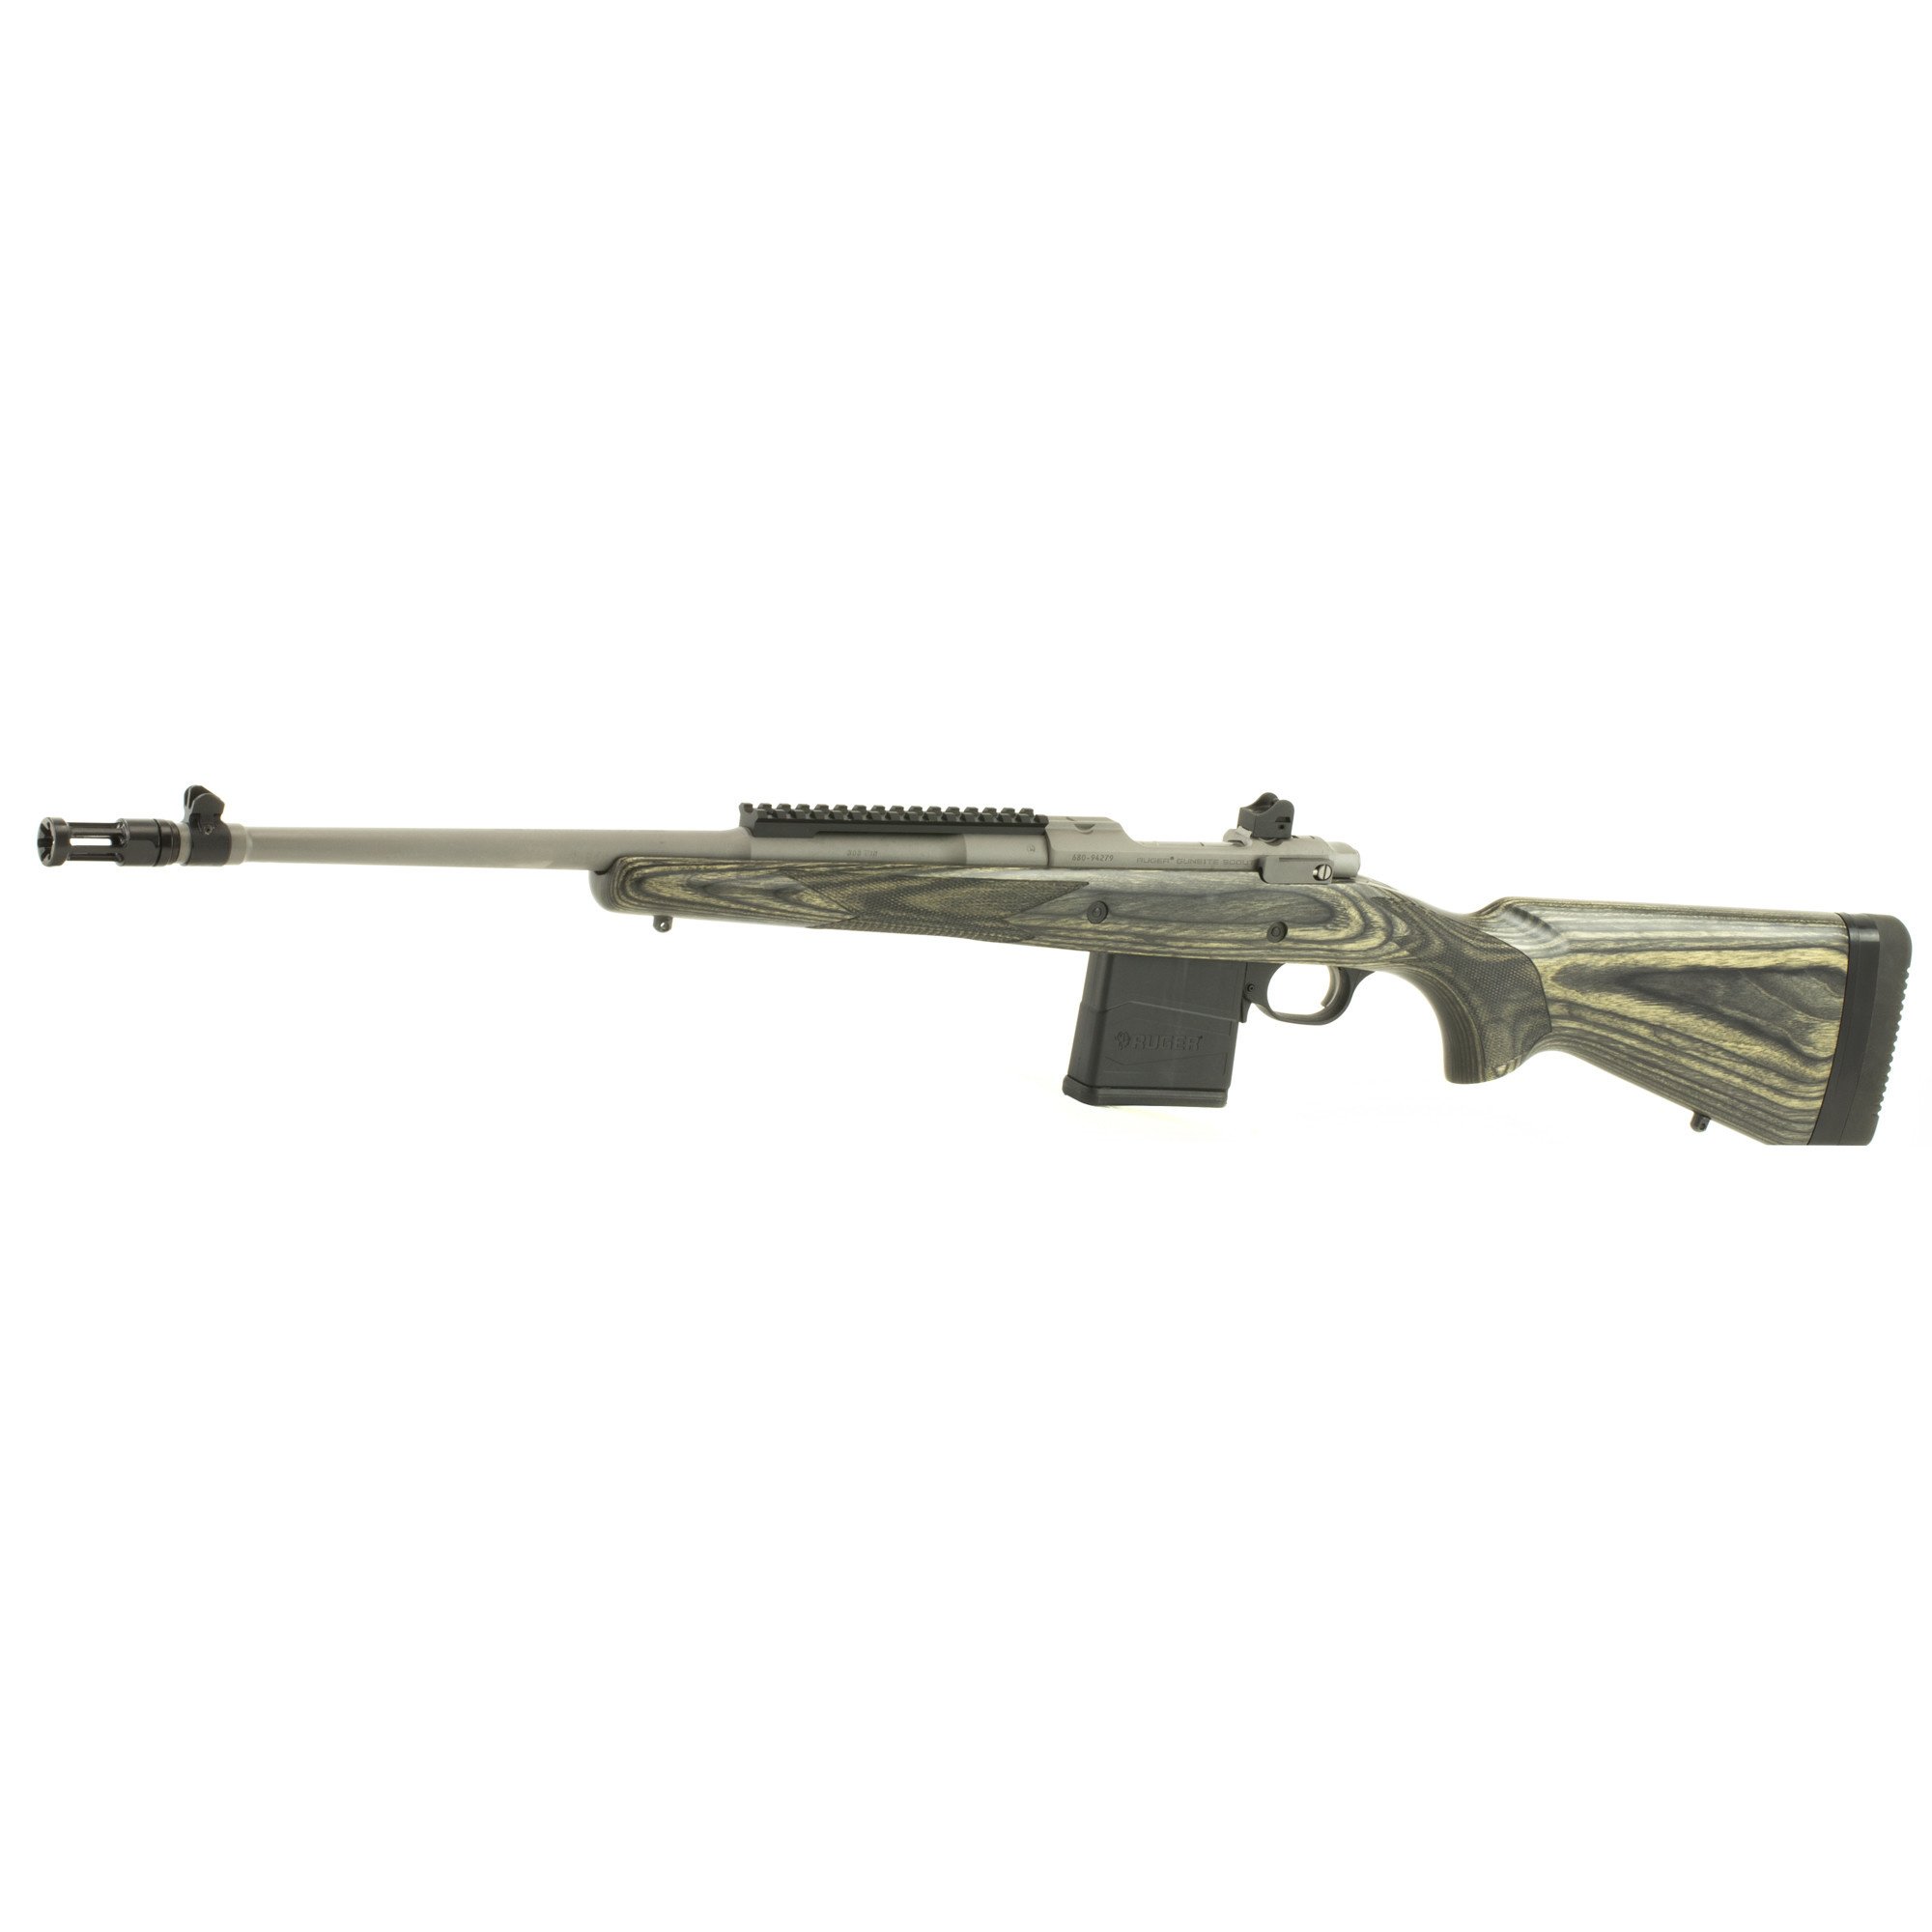 RUGER RUGER M77 GS SCOUT RFL 308 SS